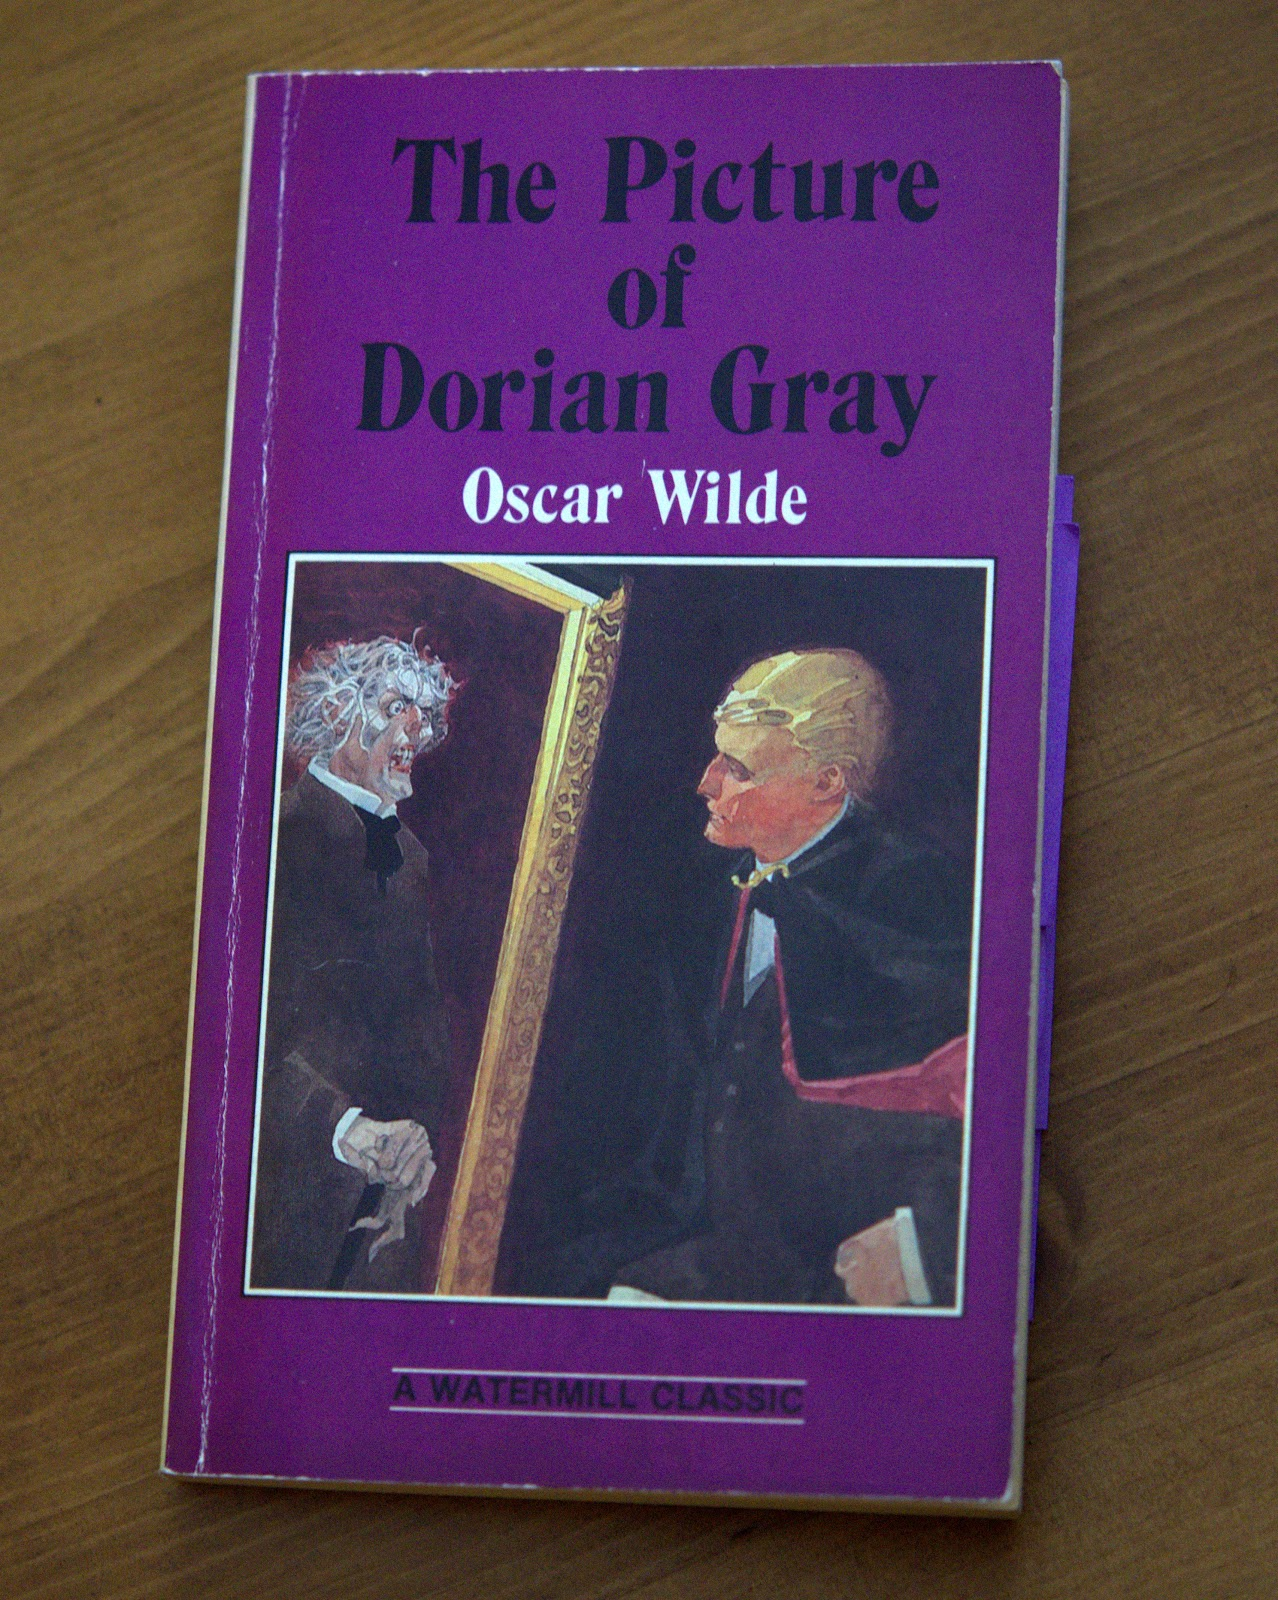 a literary analysis of the picture of dorian gray by oscar wilde The conflict between aestheticism and morality in oscar wilde's the picture of dorian gray patrick duggan download this article oscar wilde prefaces his novel, the picture of dorian gray, with a reflection on art, the artist, and the utility of both.